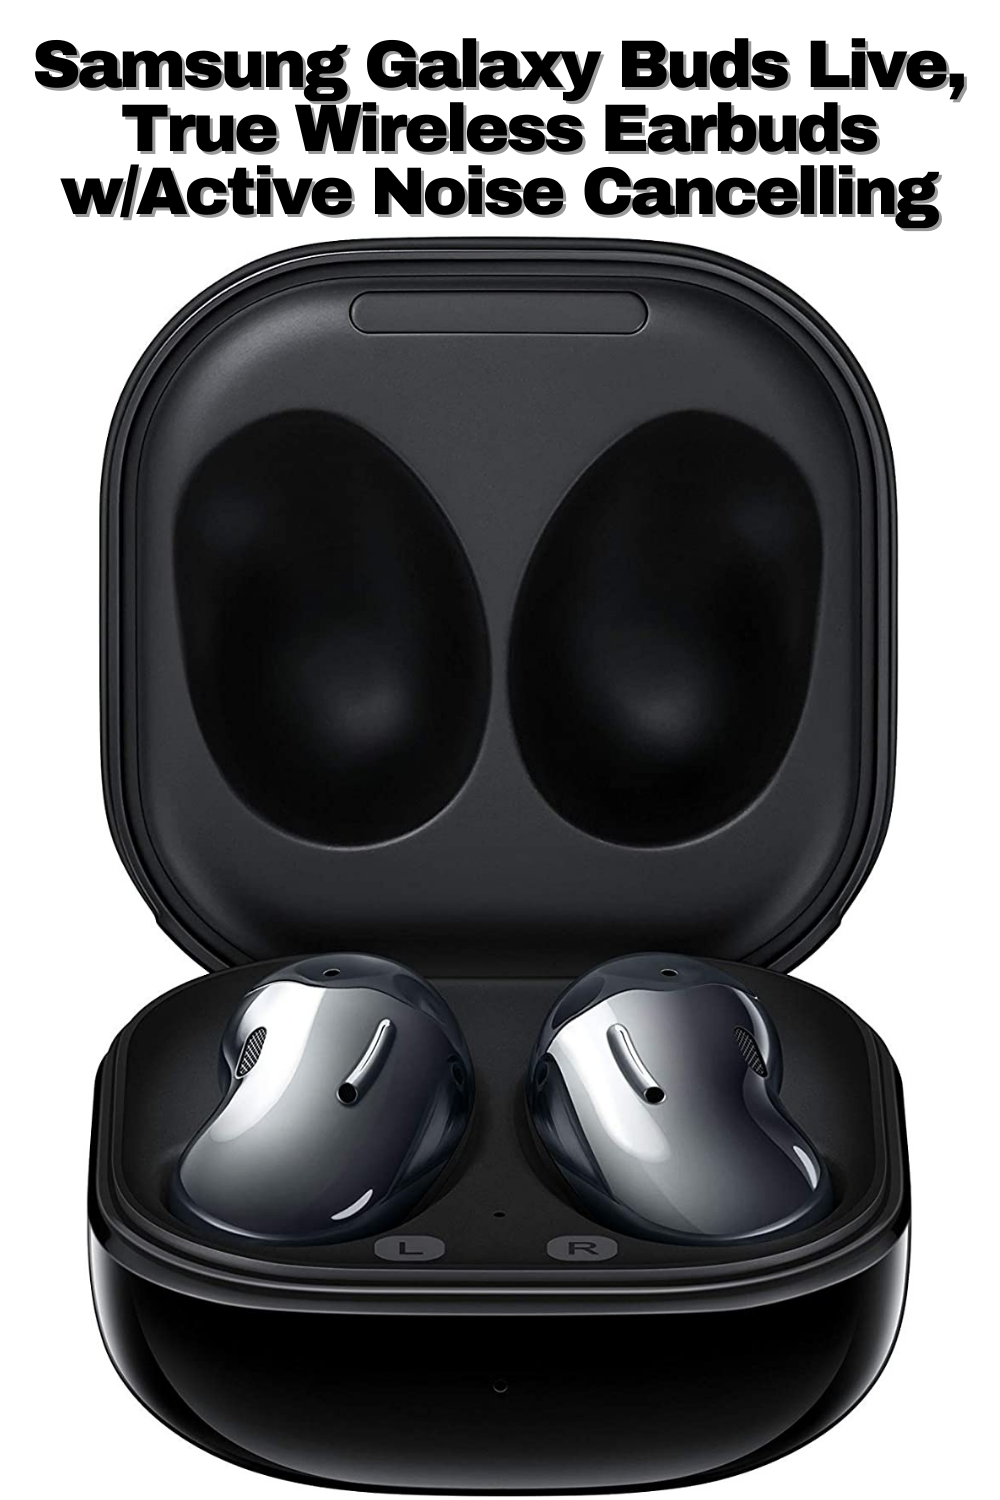 Samsung Galaxy Buds Live True Wireless Earbuds W Active Noise Cancelling In 2021 Wireless Earbuds Active Noise Cancellation Earbuds